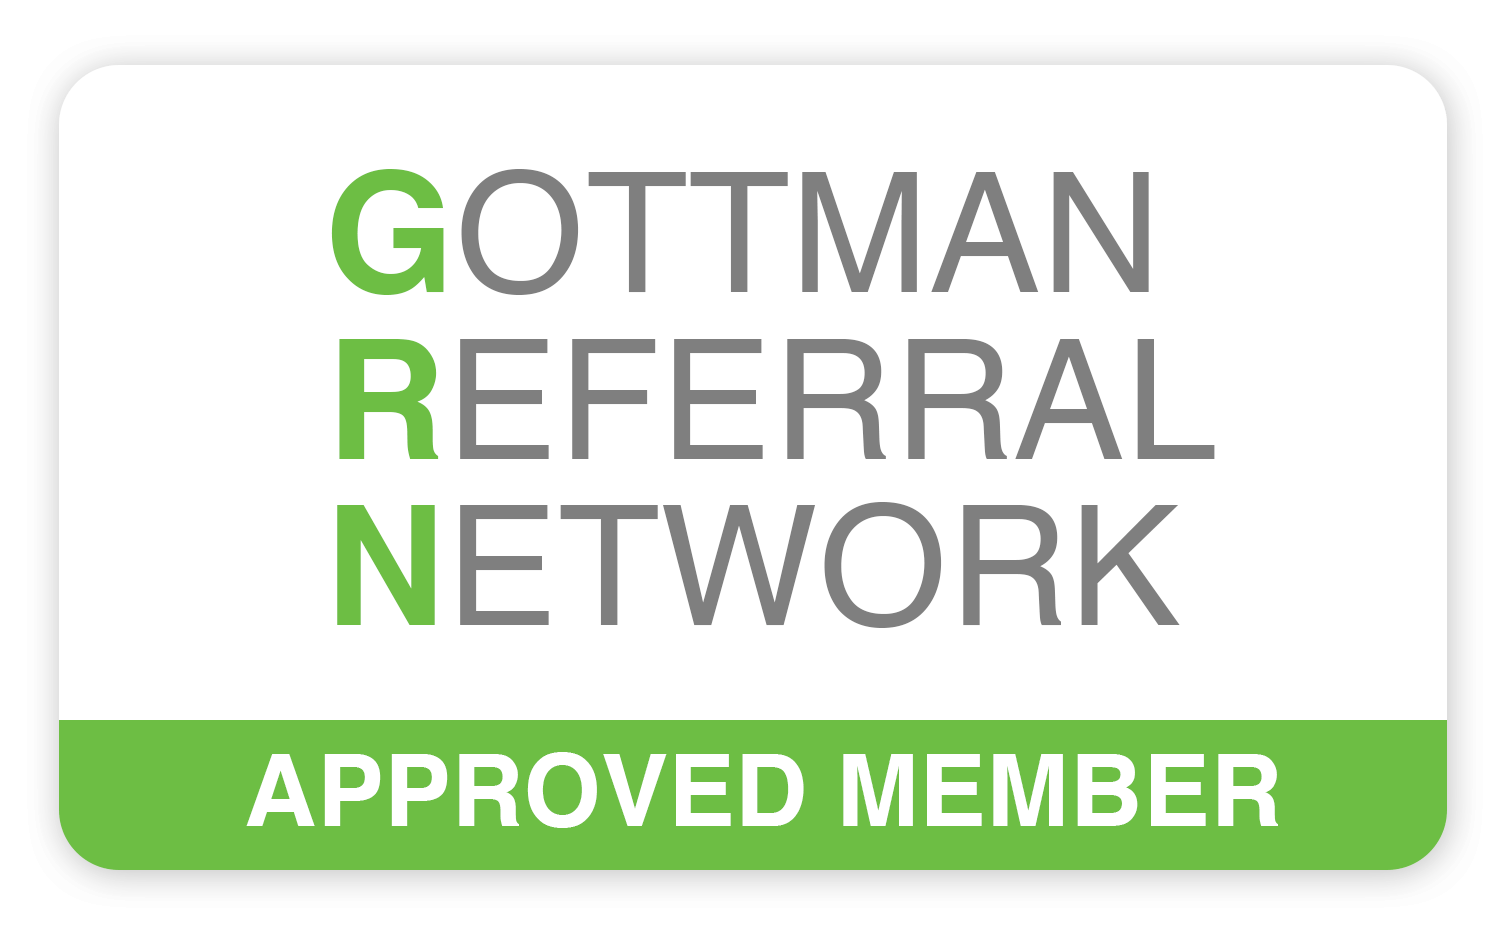 Justin Puch's profile on the Gottman Referral Network